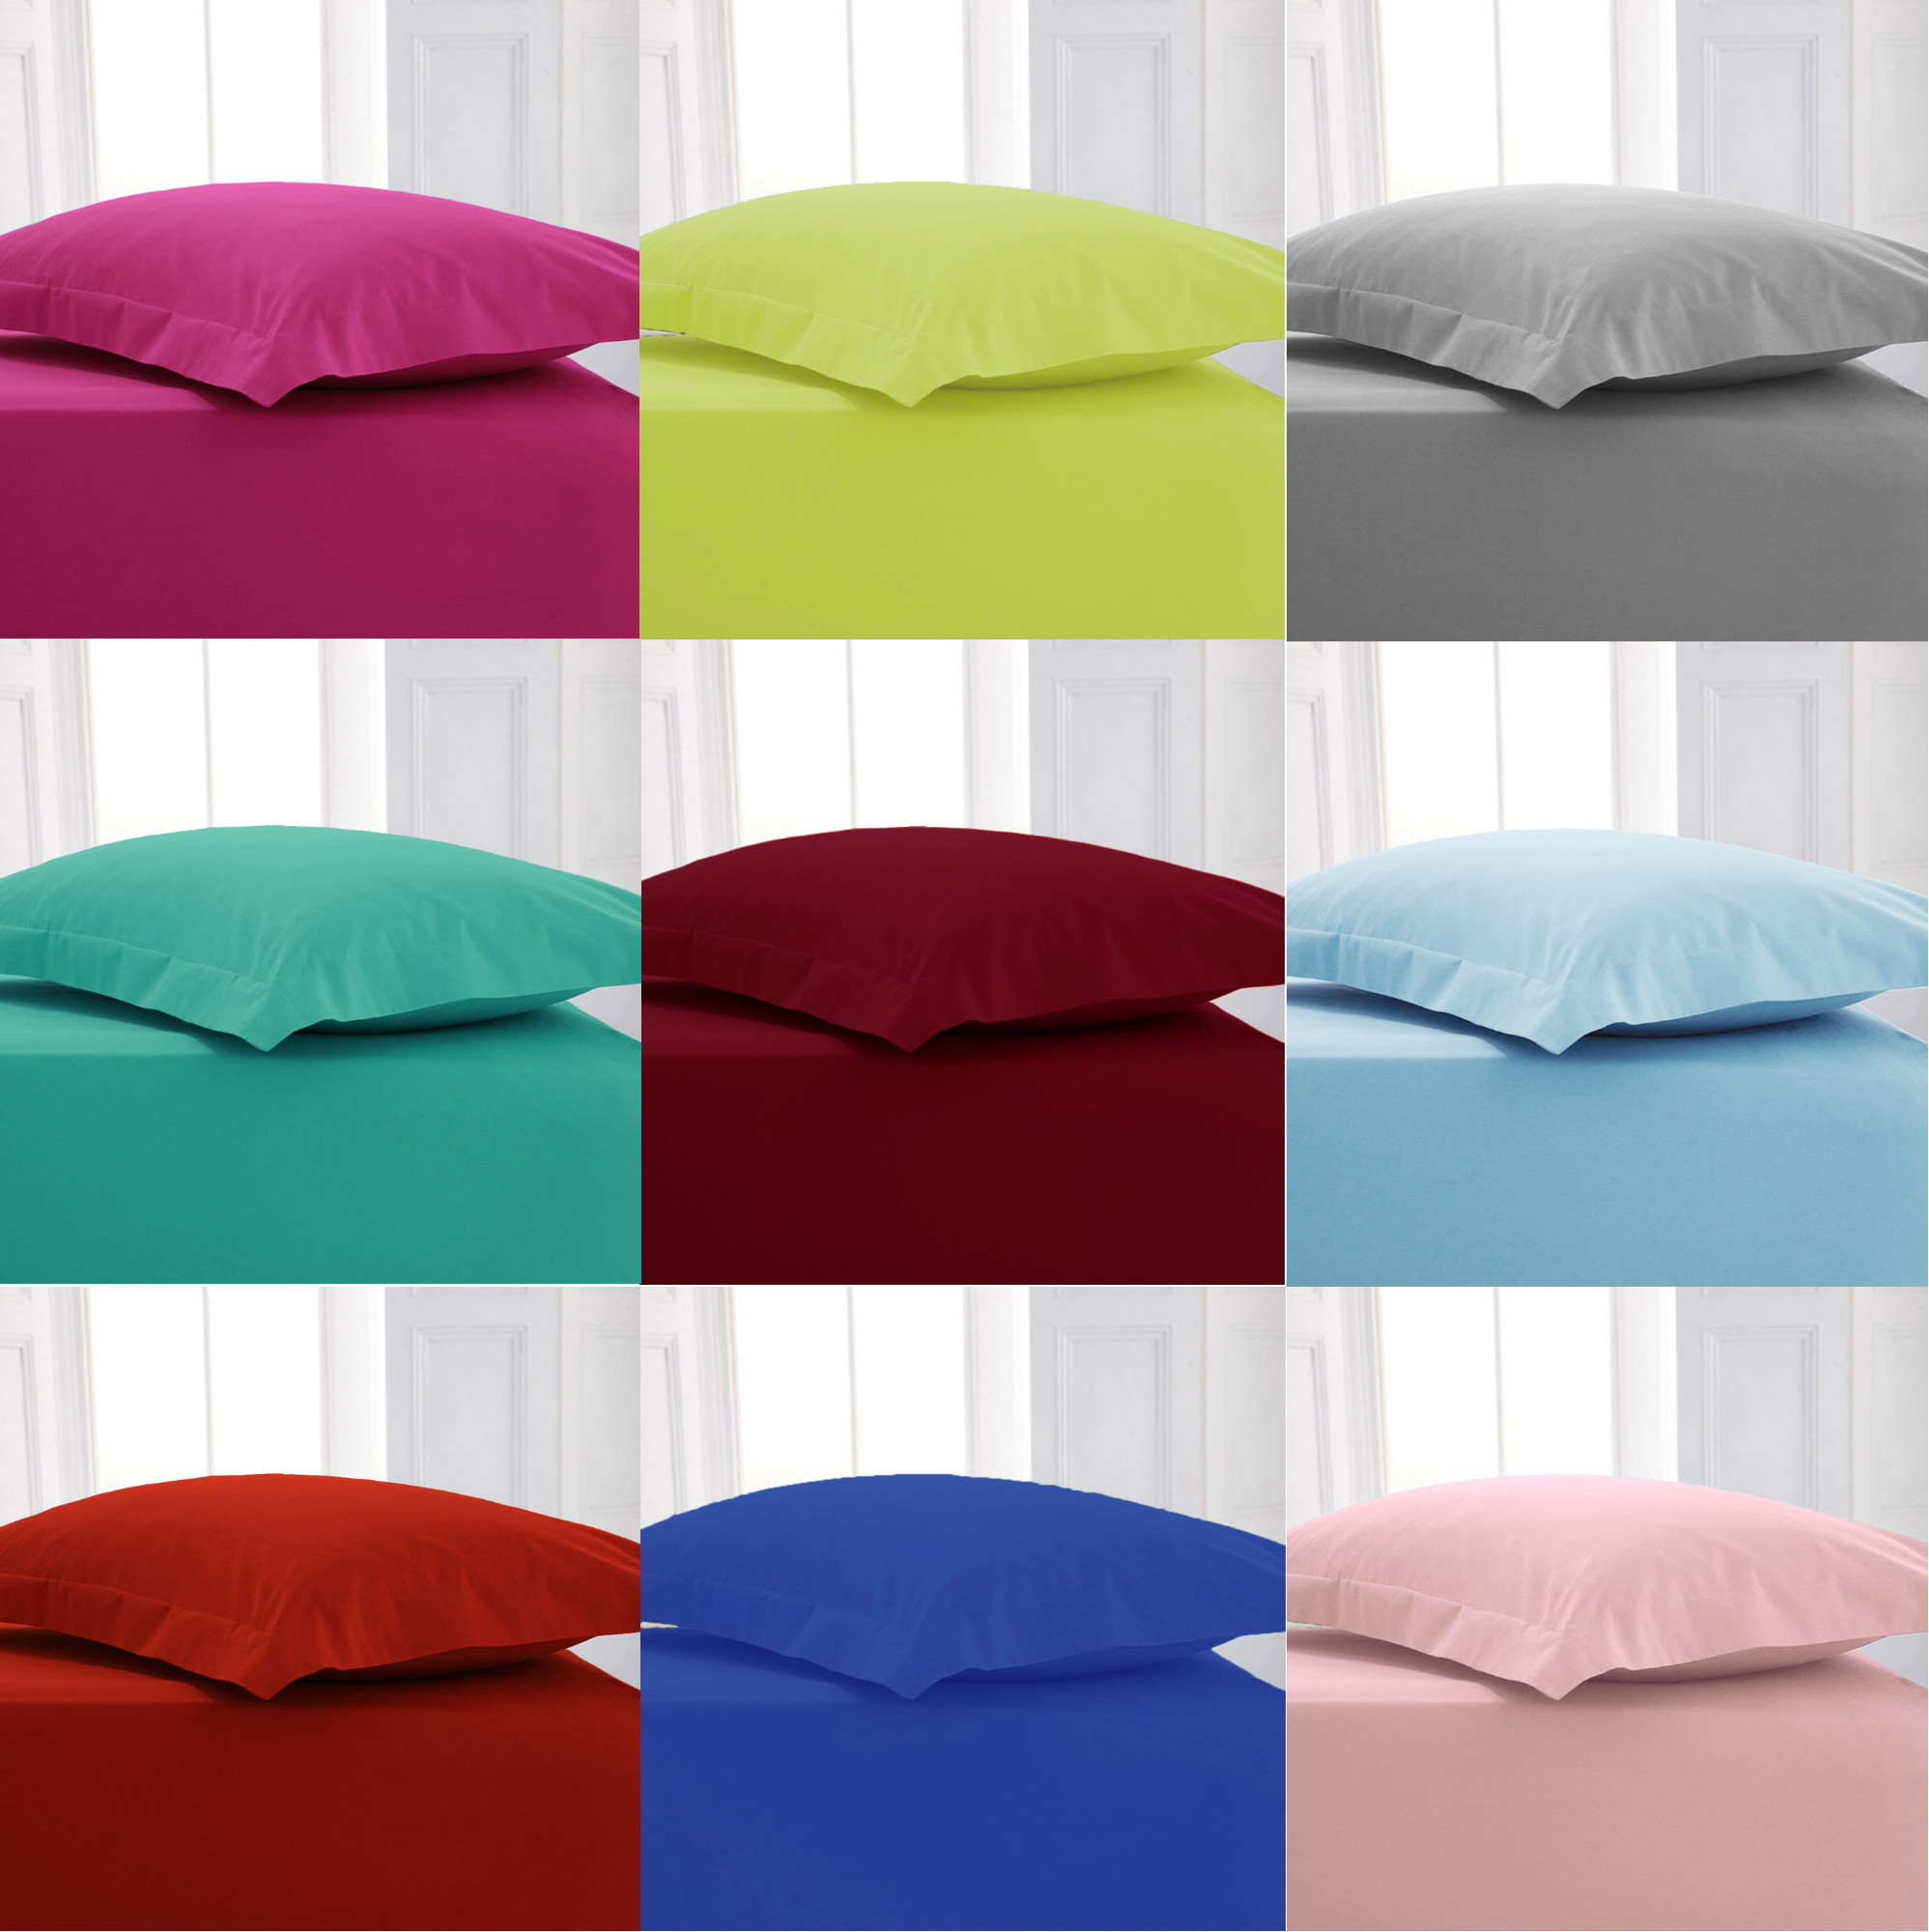 Double Bed Fitted Sheet Details About 4 Foot Small Double Poly Cotton Fitted Bed Sheets Bed Linen